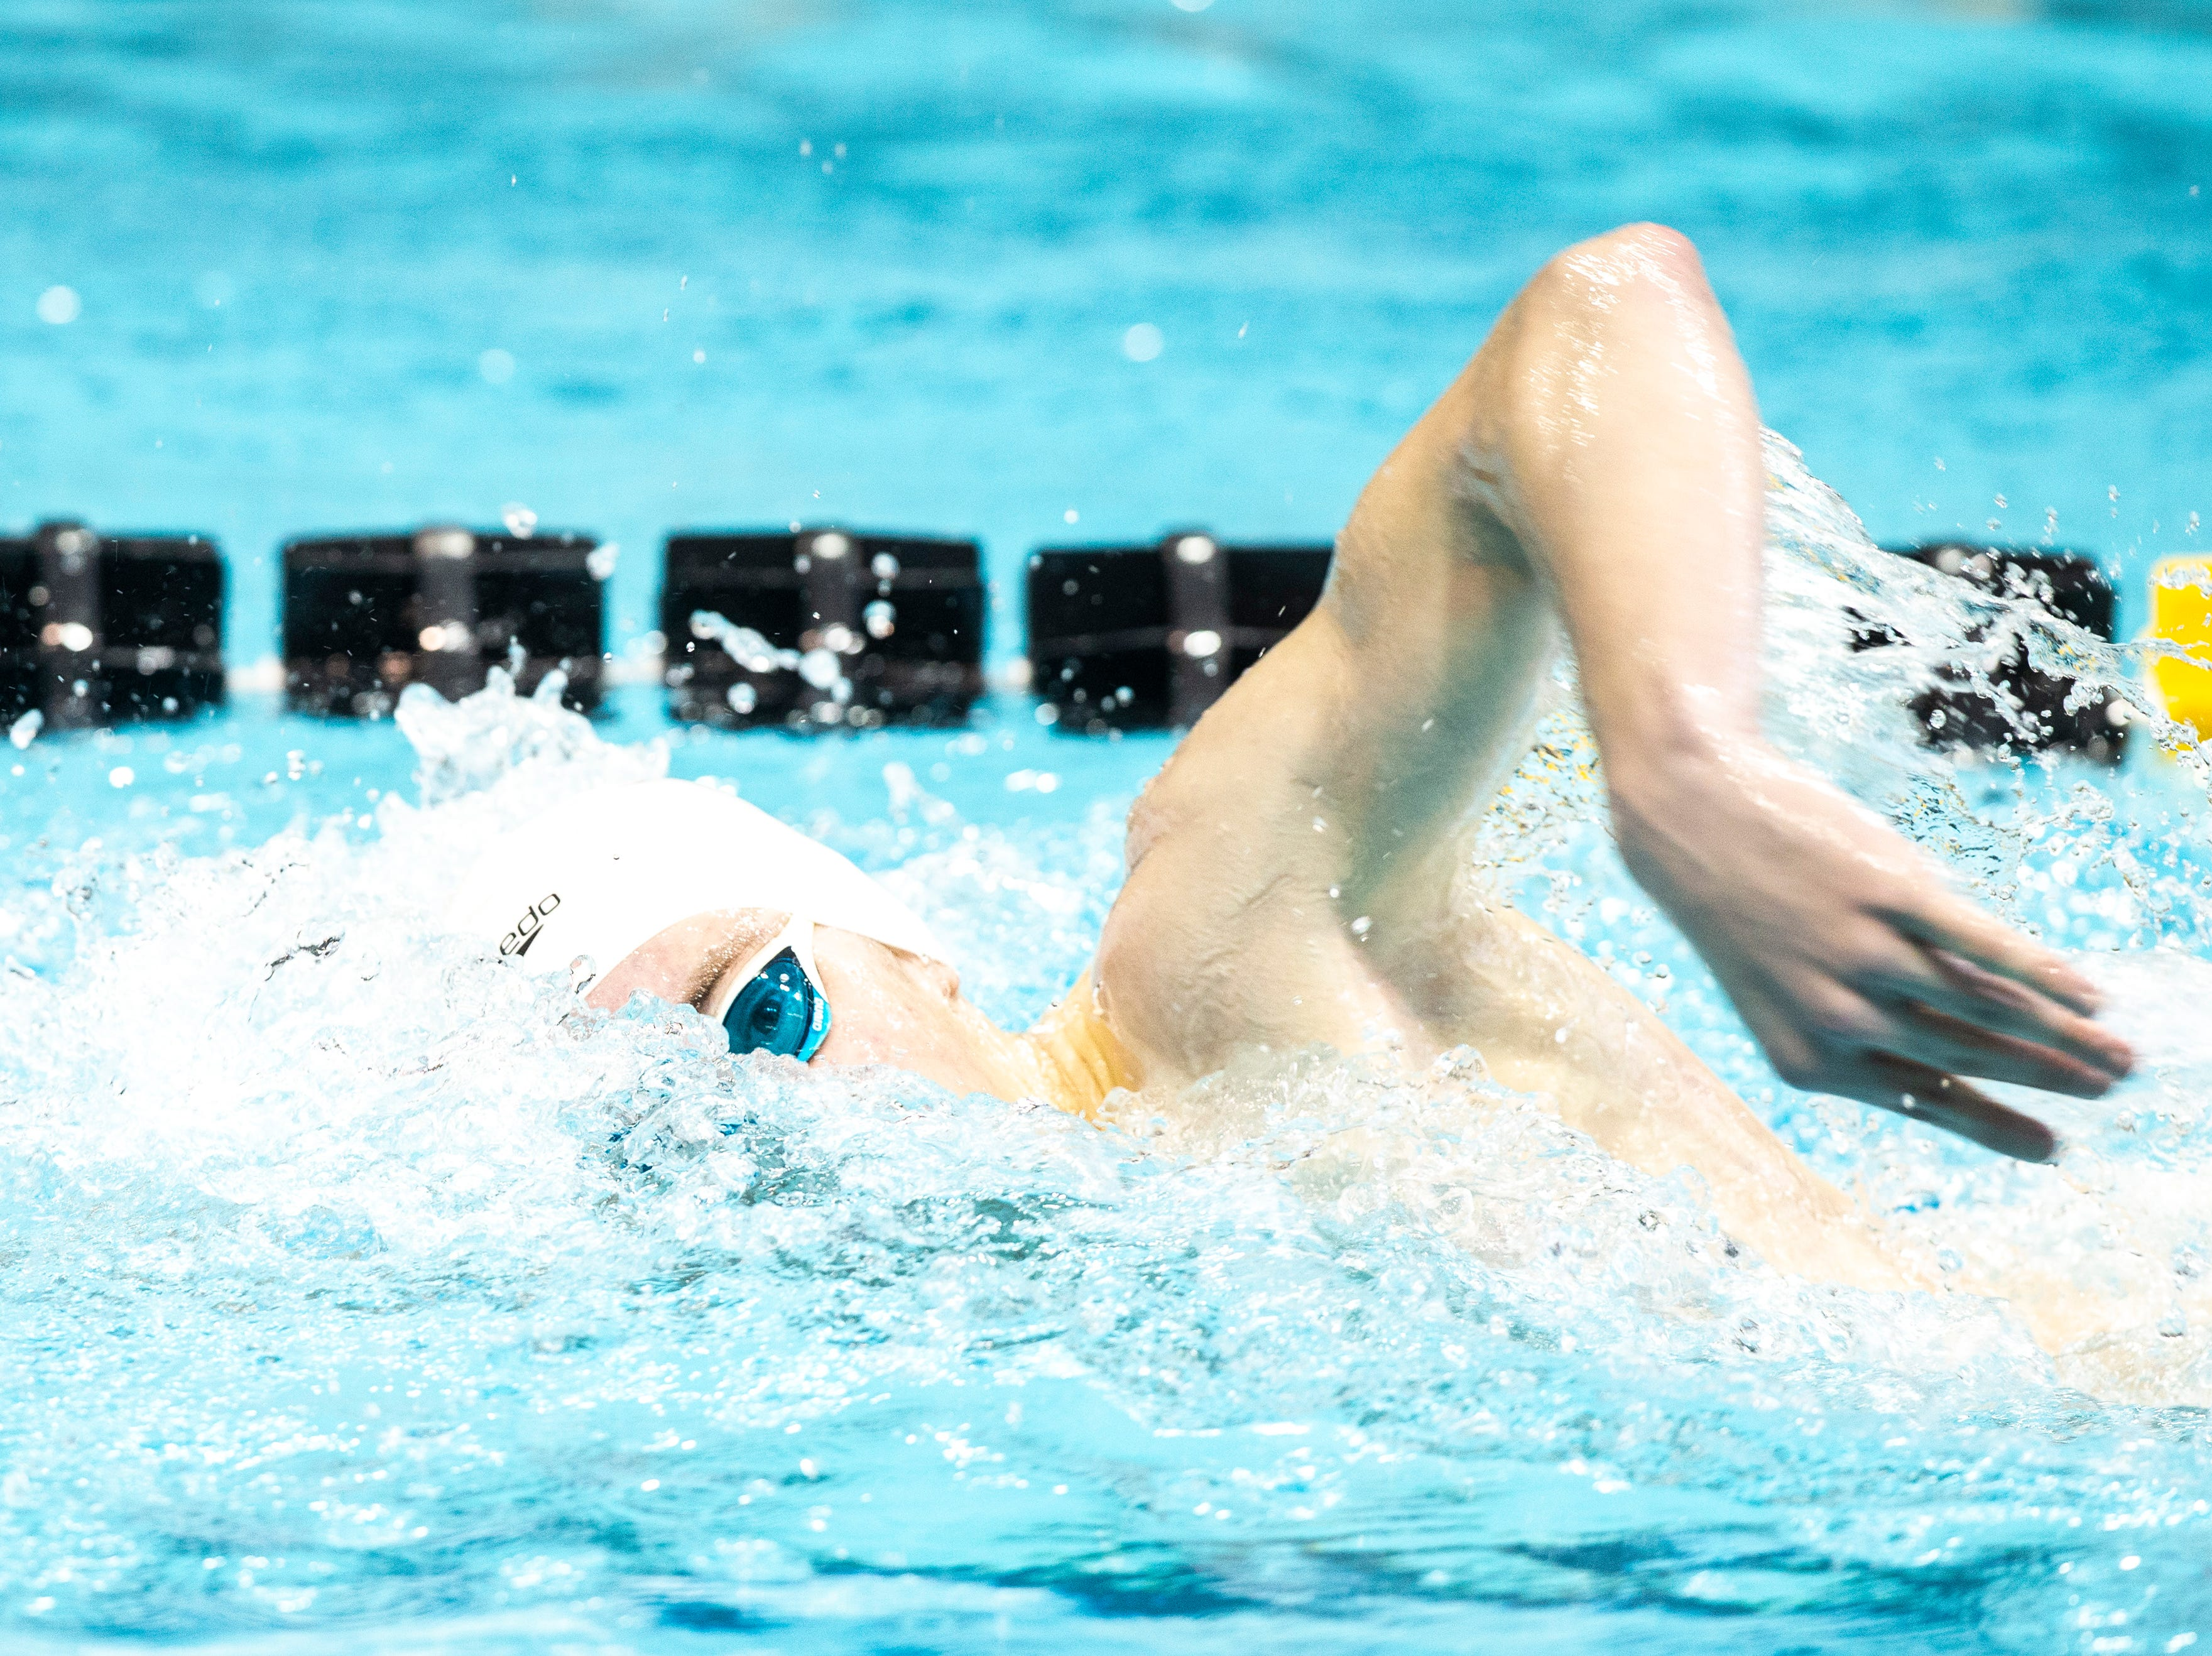 Iowa City High sophomore Isaac Weigel competes in the second heat of 500 yard freestyle during the Iowa boys' state swimming regional championship meet on Saturday, Feb. 9, 2019 at Campus Recreation and Wellness Center on the University of Iowa campus in Iowa City, Iowa. Weigel finished fourth overall, with a time of 4:38.40.